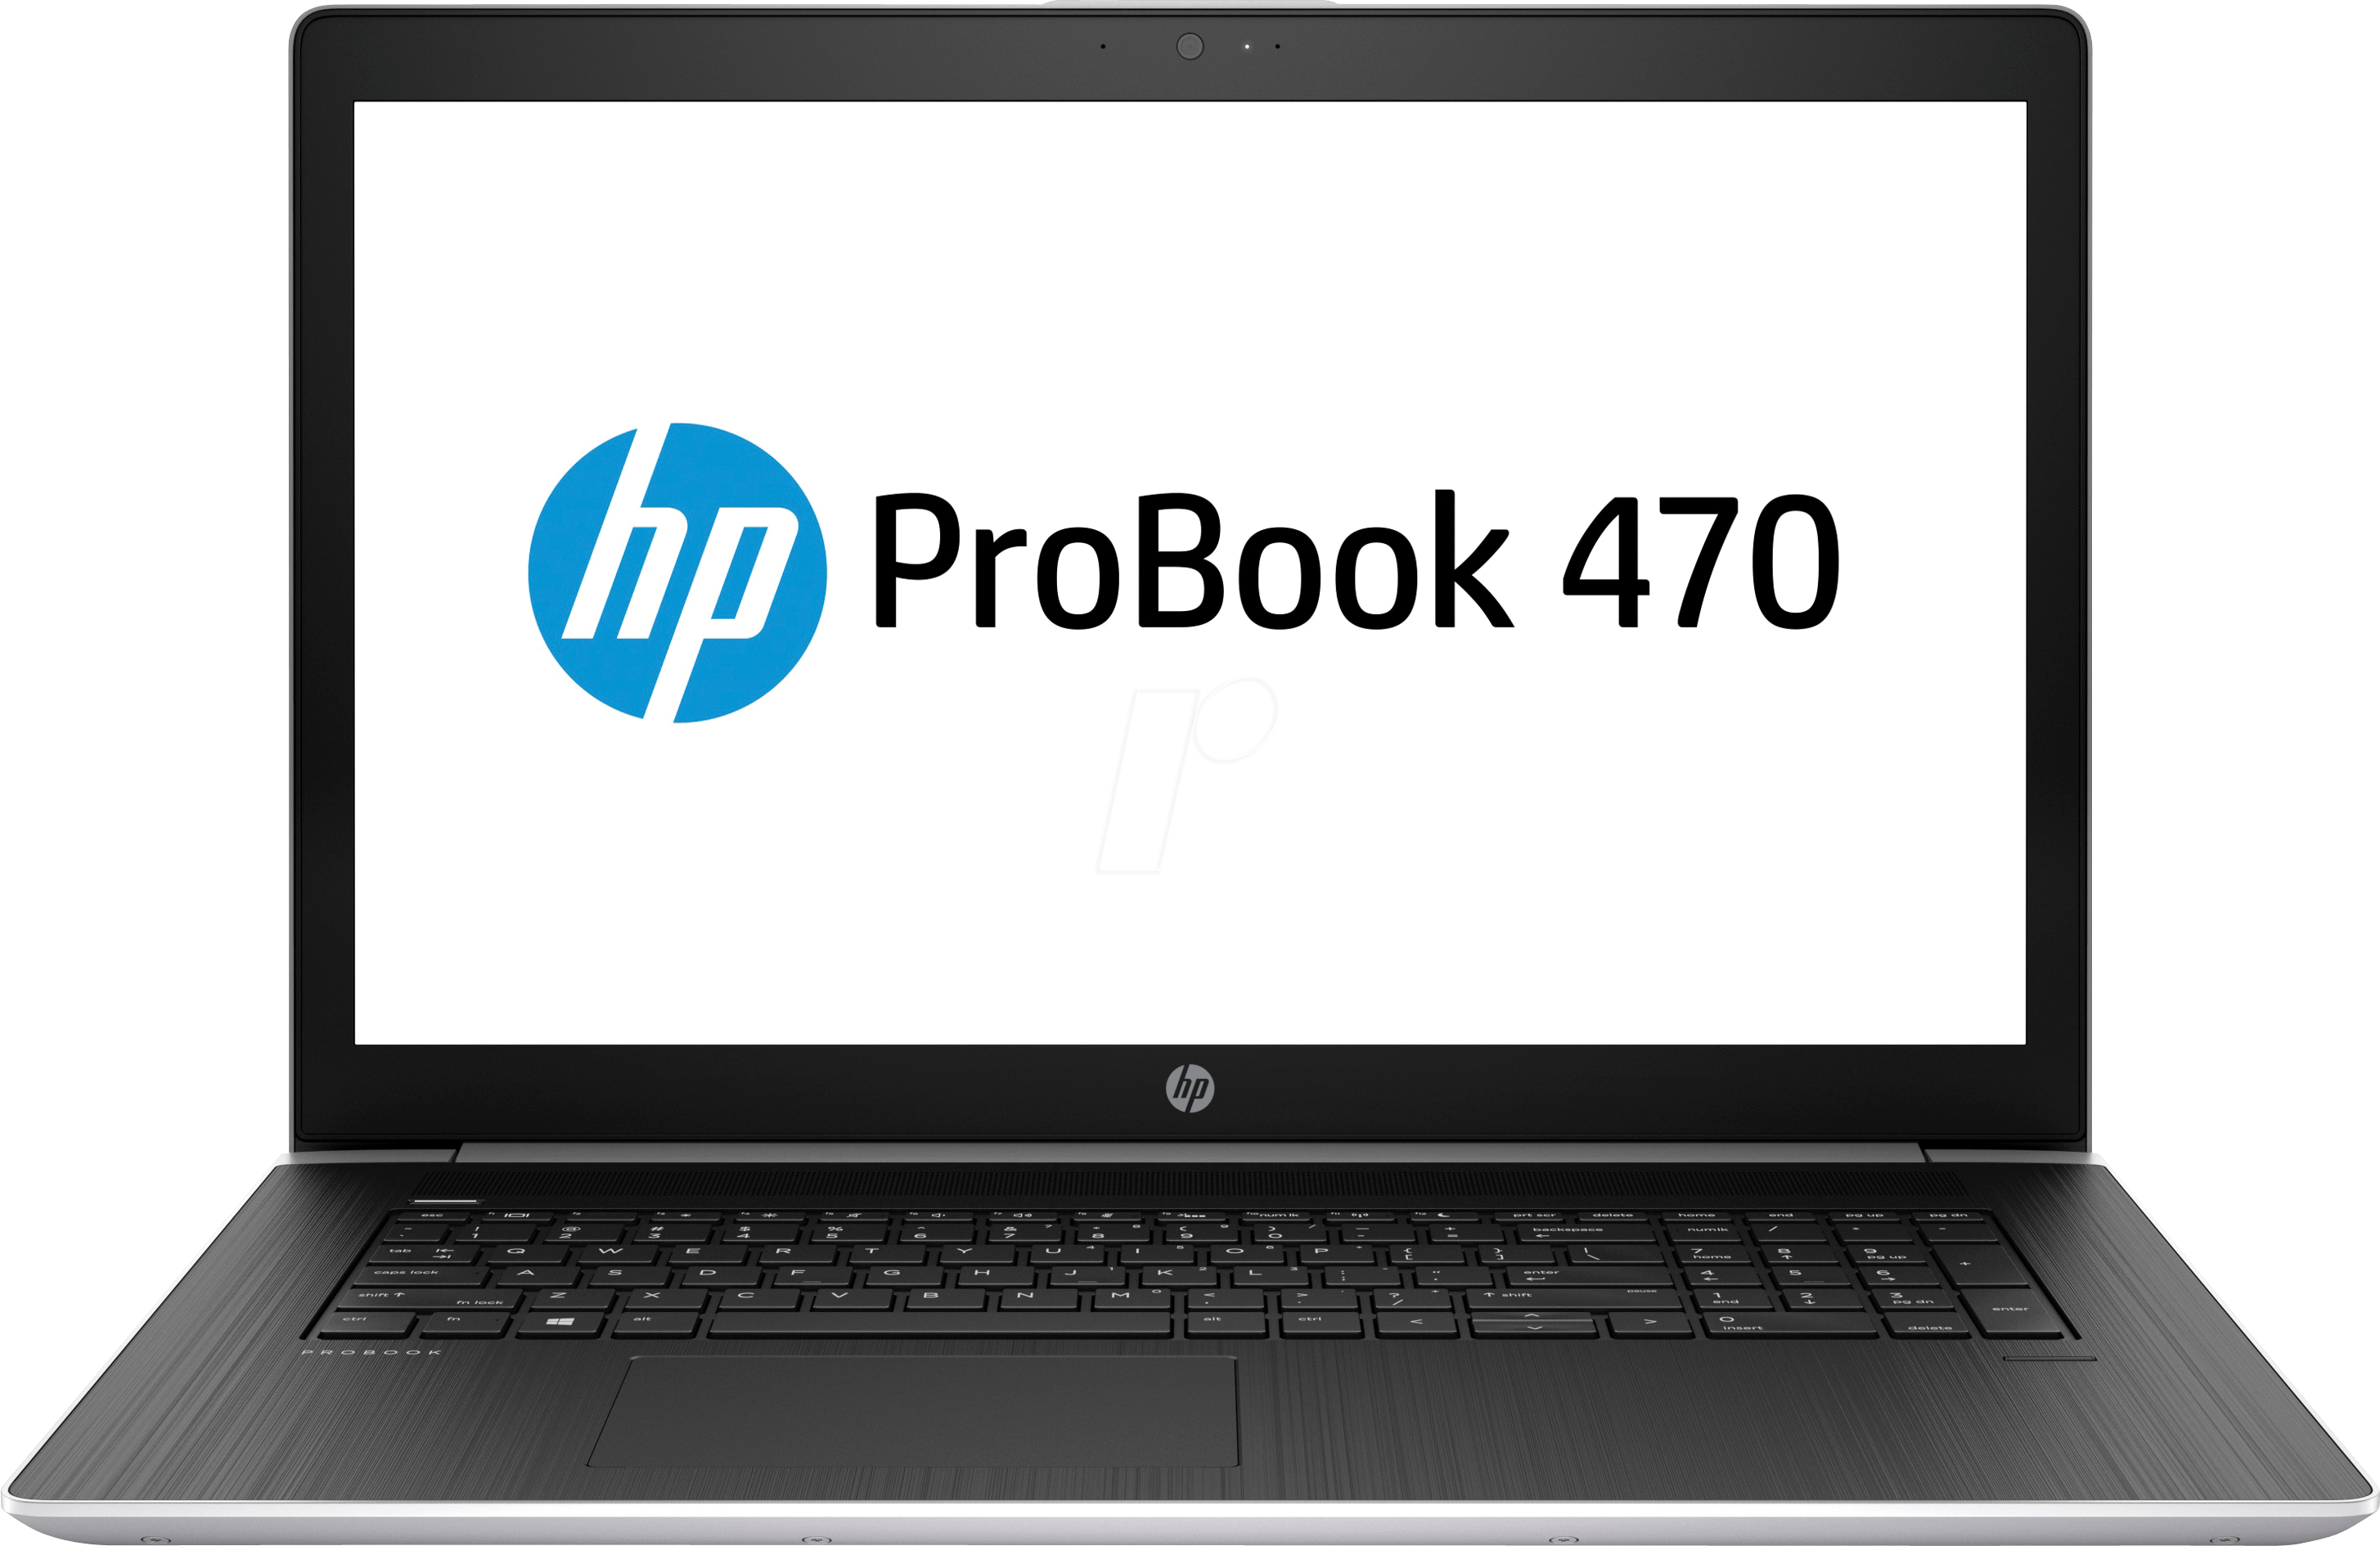 HP 4QW92EA - Laptop, ProBook 470G5, SSD, Window...